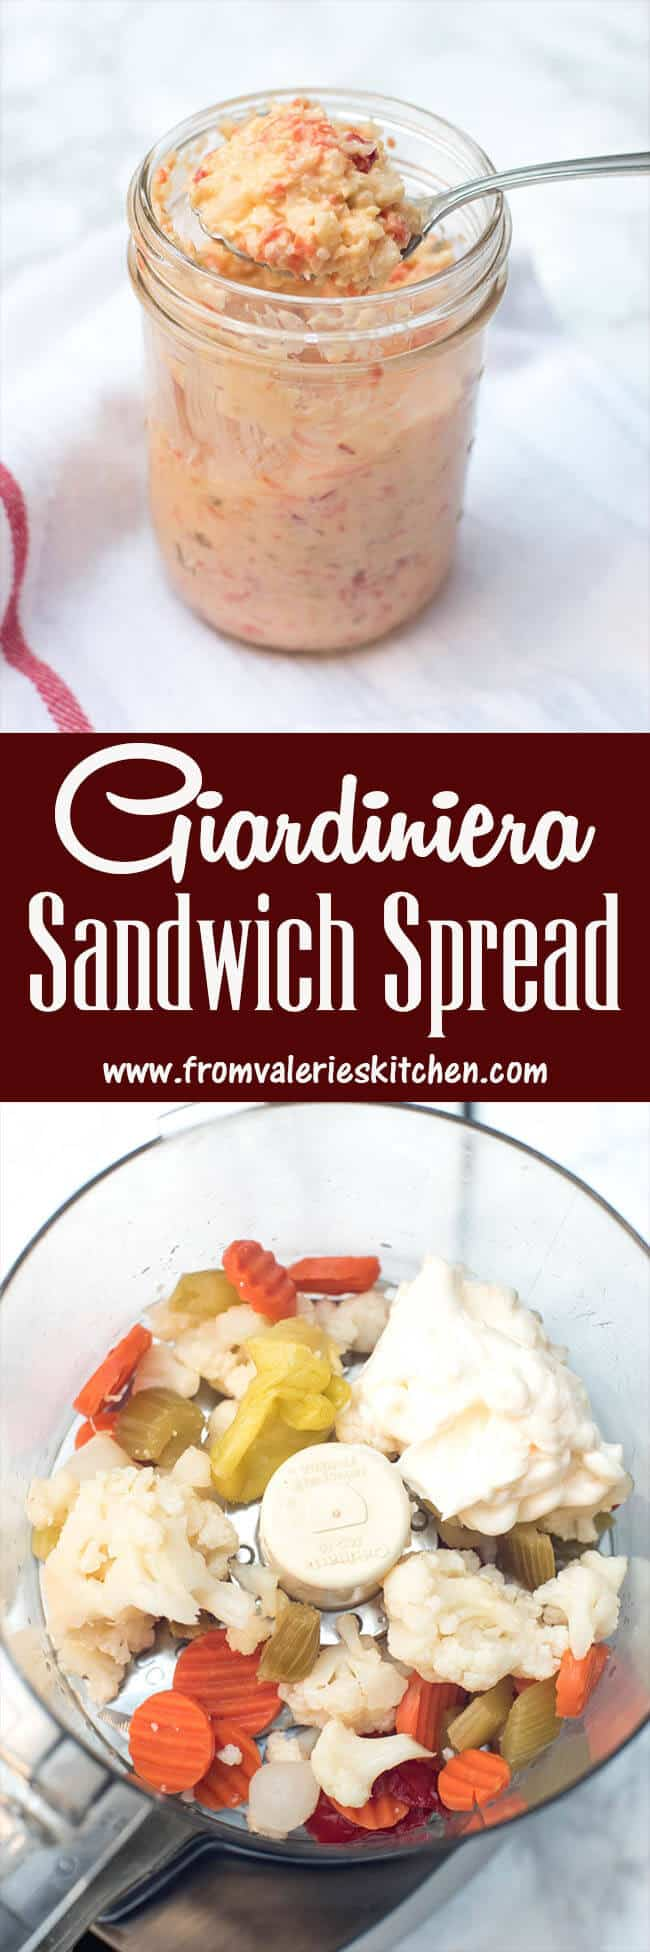 A two image vertical collage of Giardiniera Sandwich Spread with text overlay.